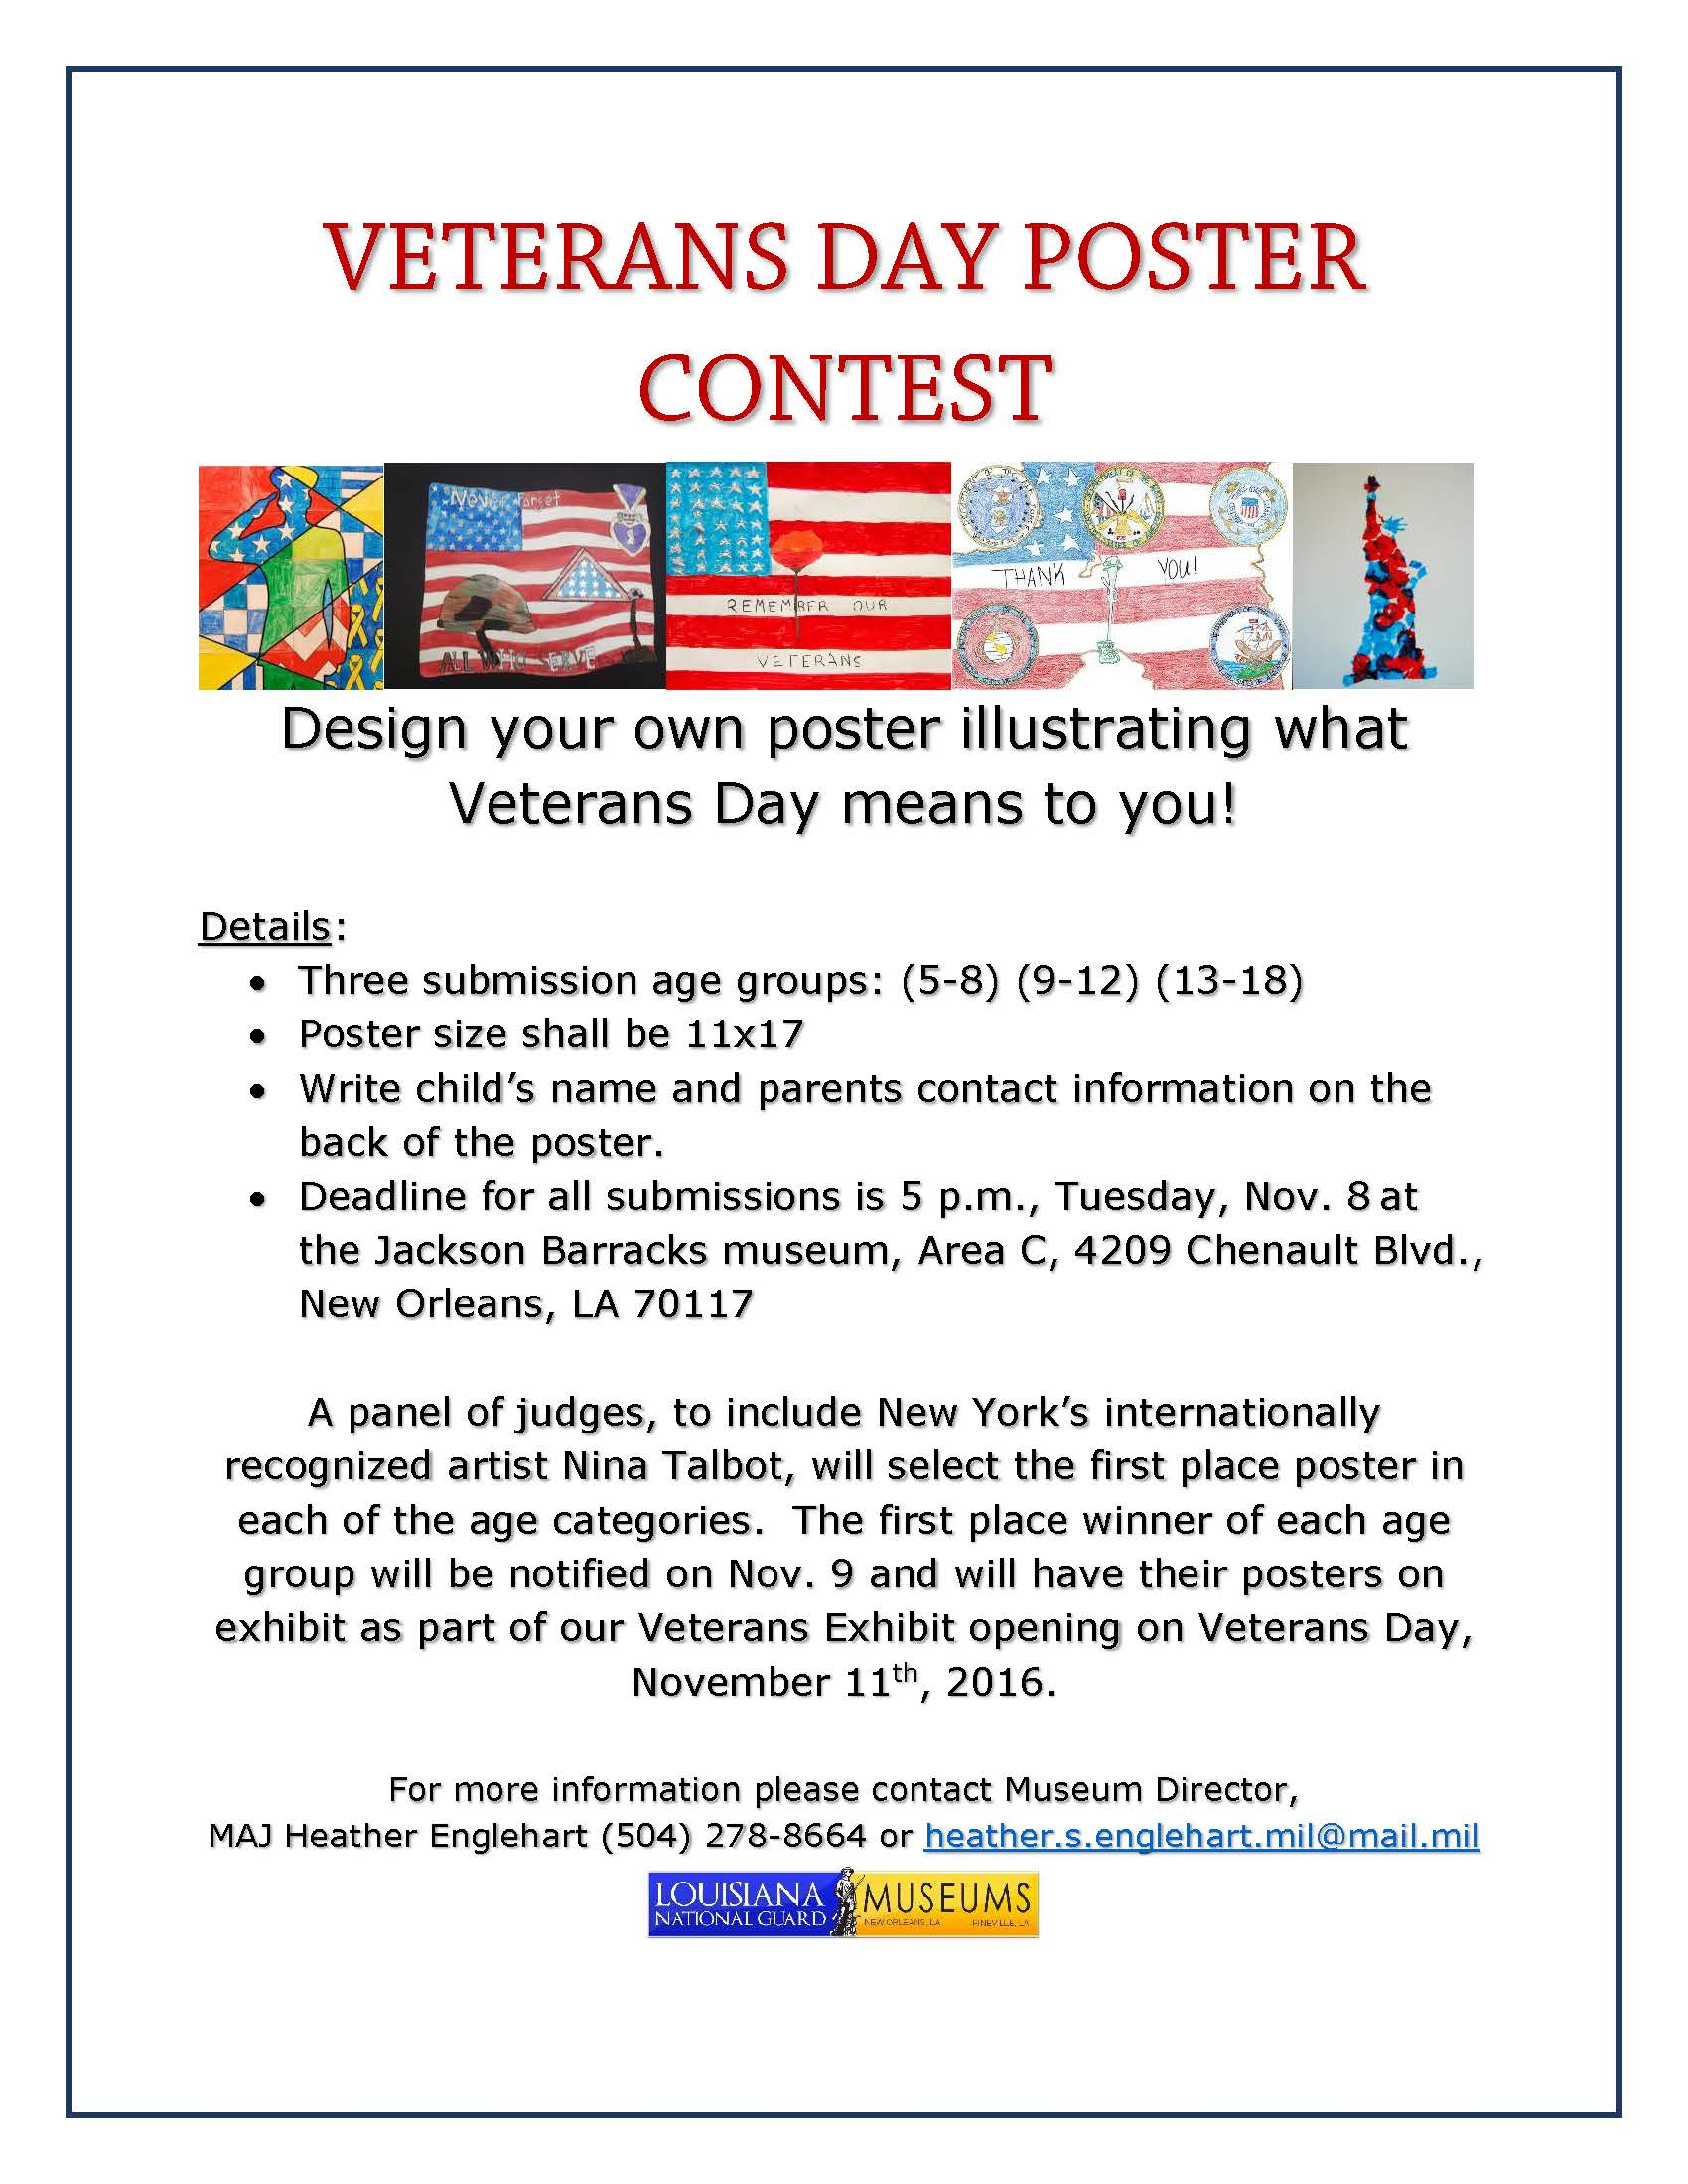 veterans-day-poster-contest